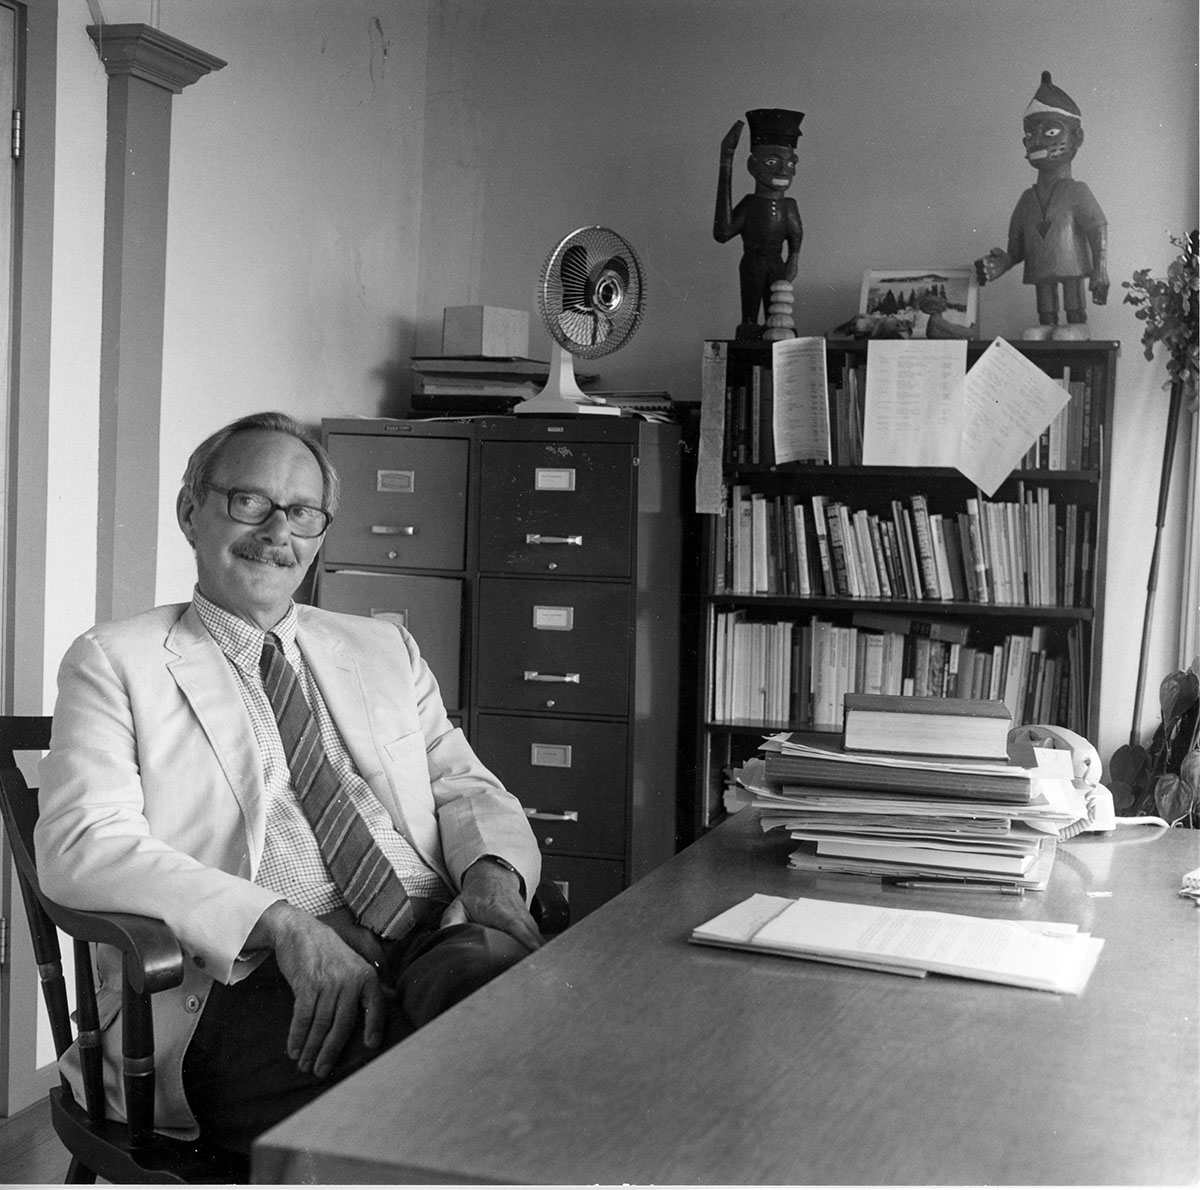 Ed Kaelber seated at desk, photograph